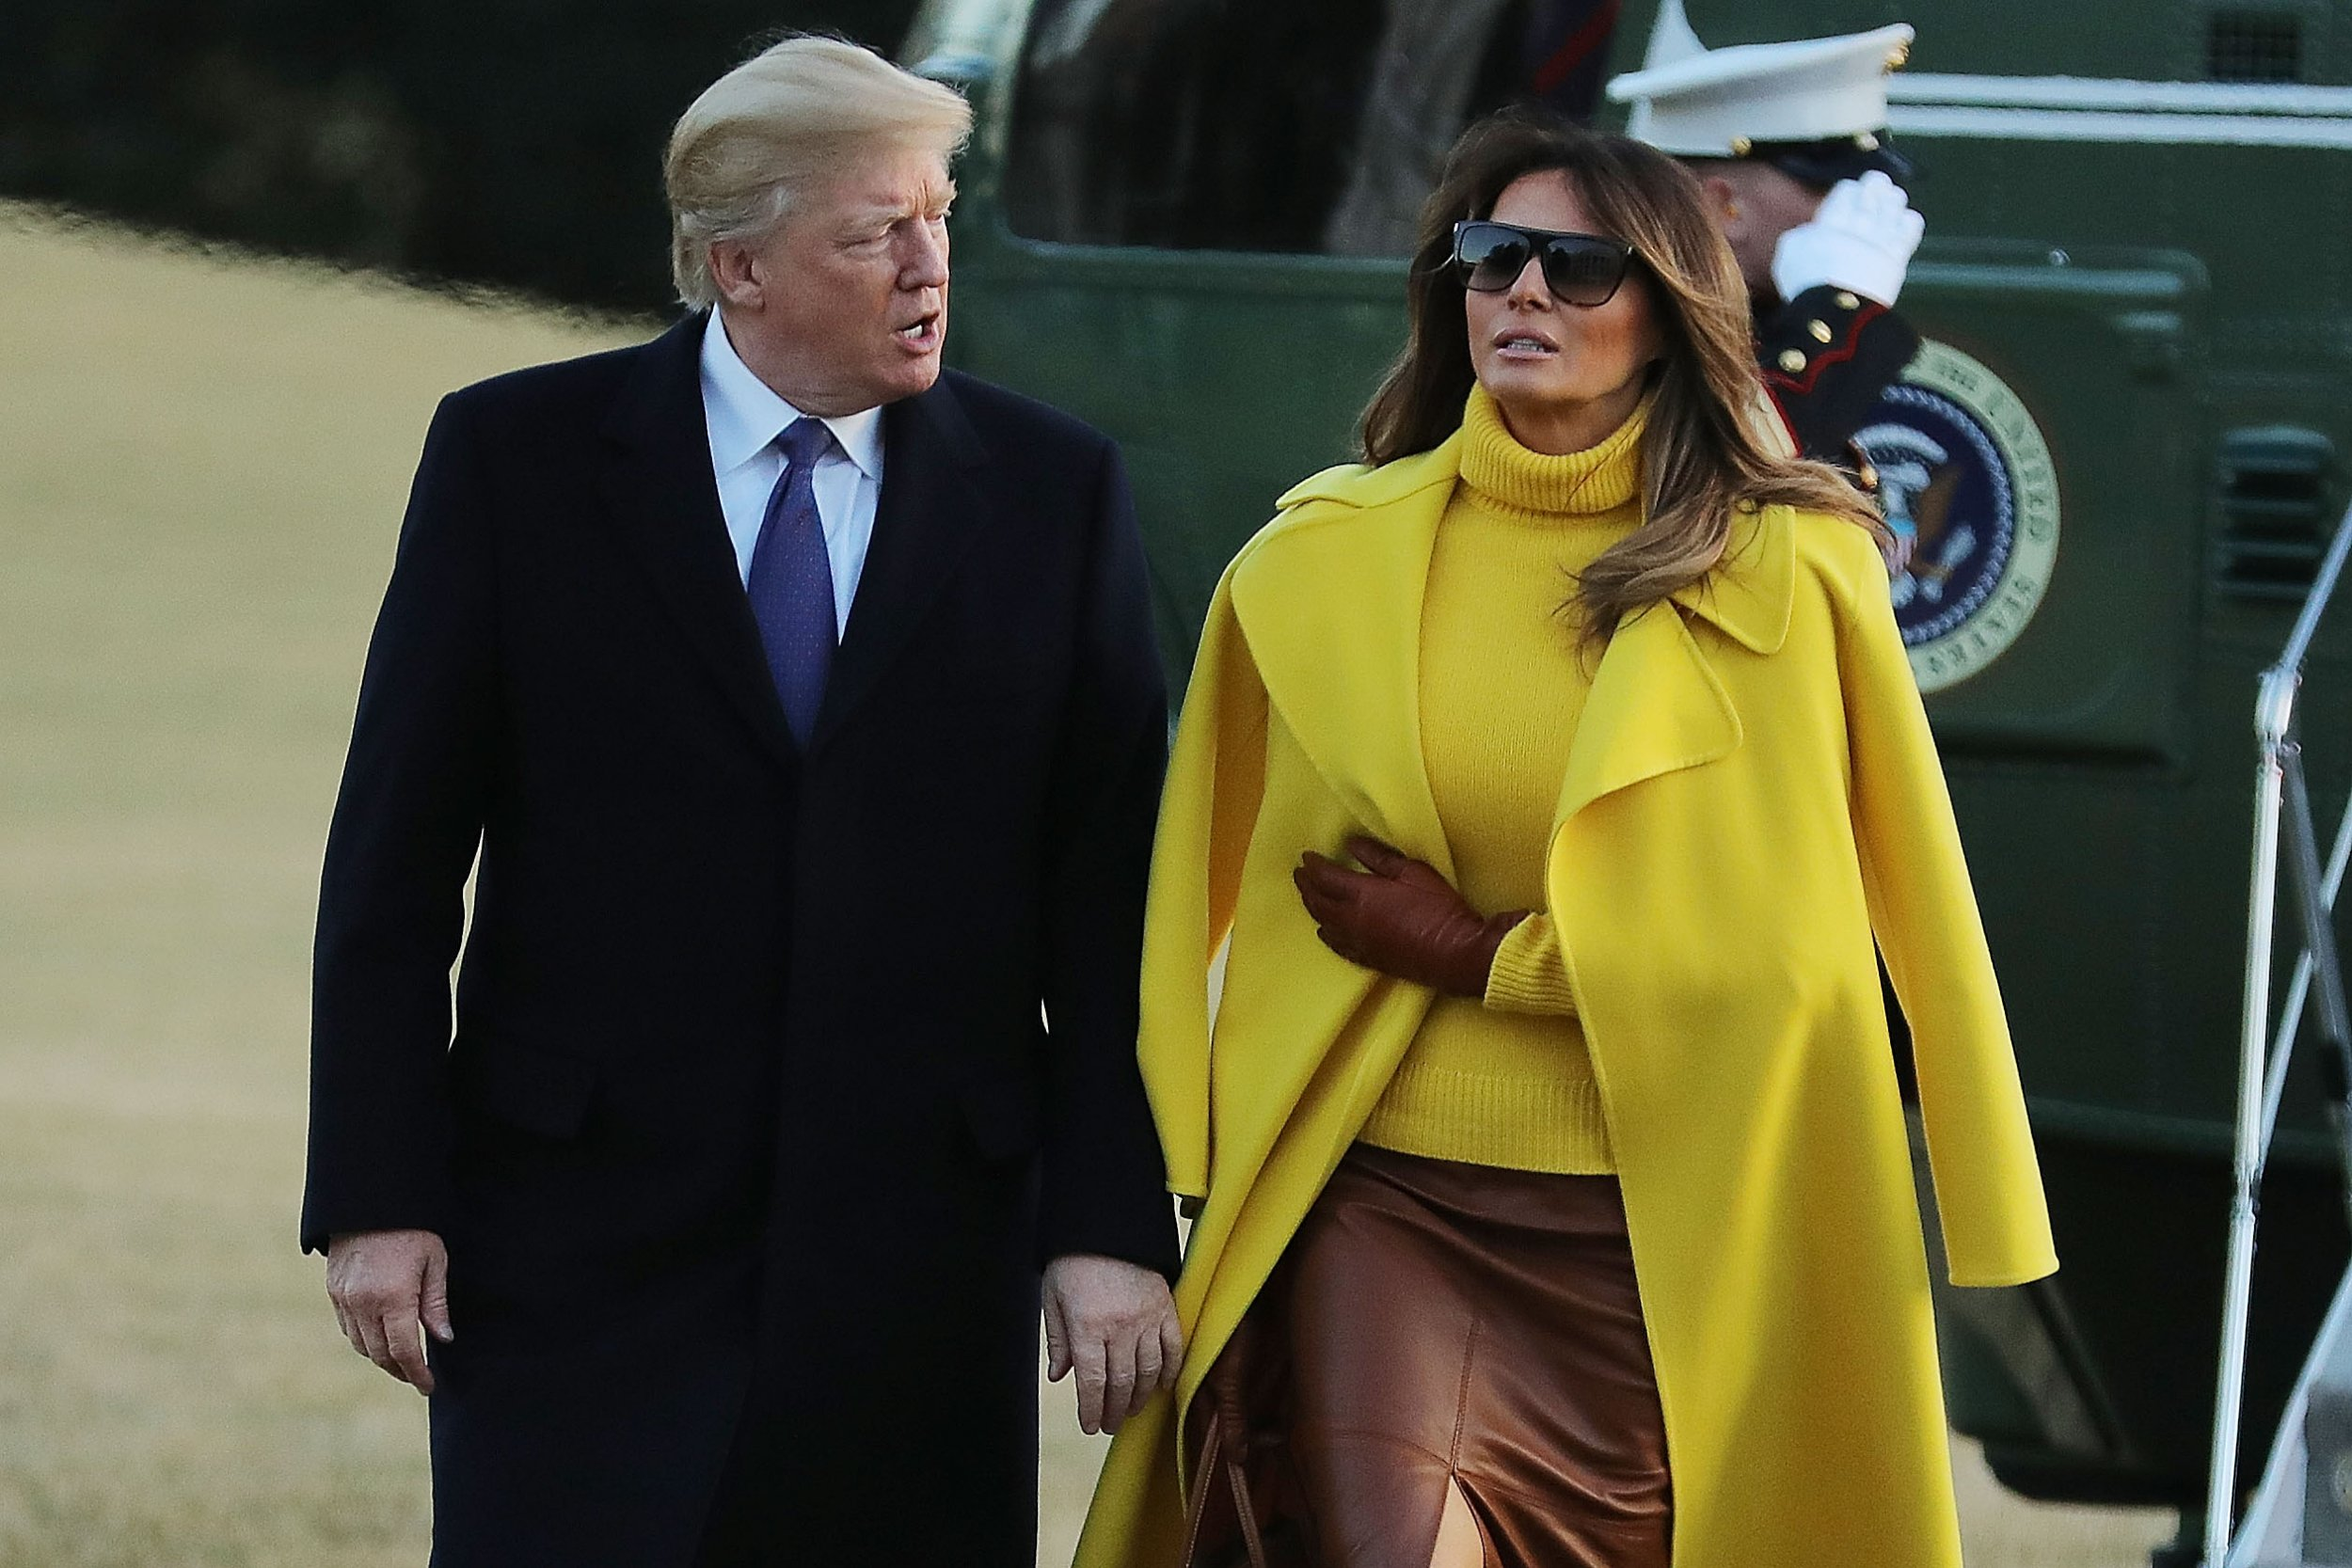 See Photos With 2018 Photos: Did Melania Know About Trump's Alleged Affairs